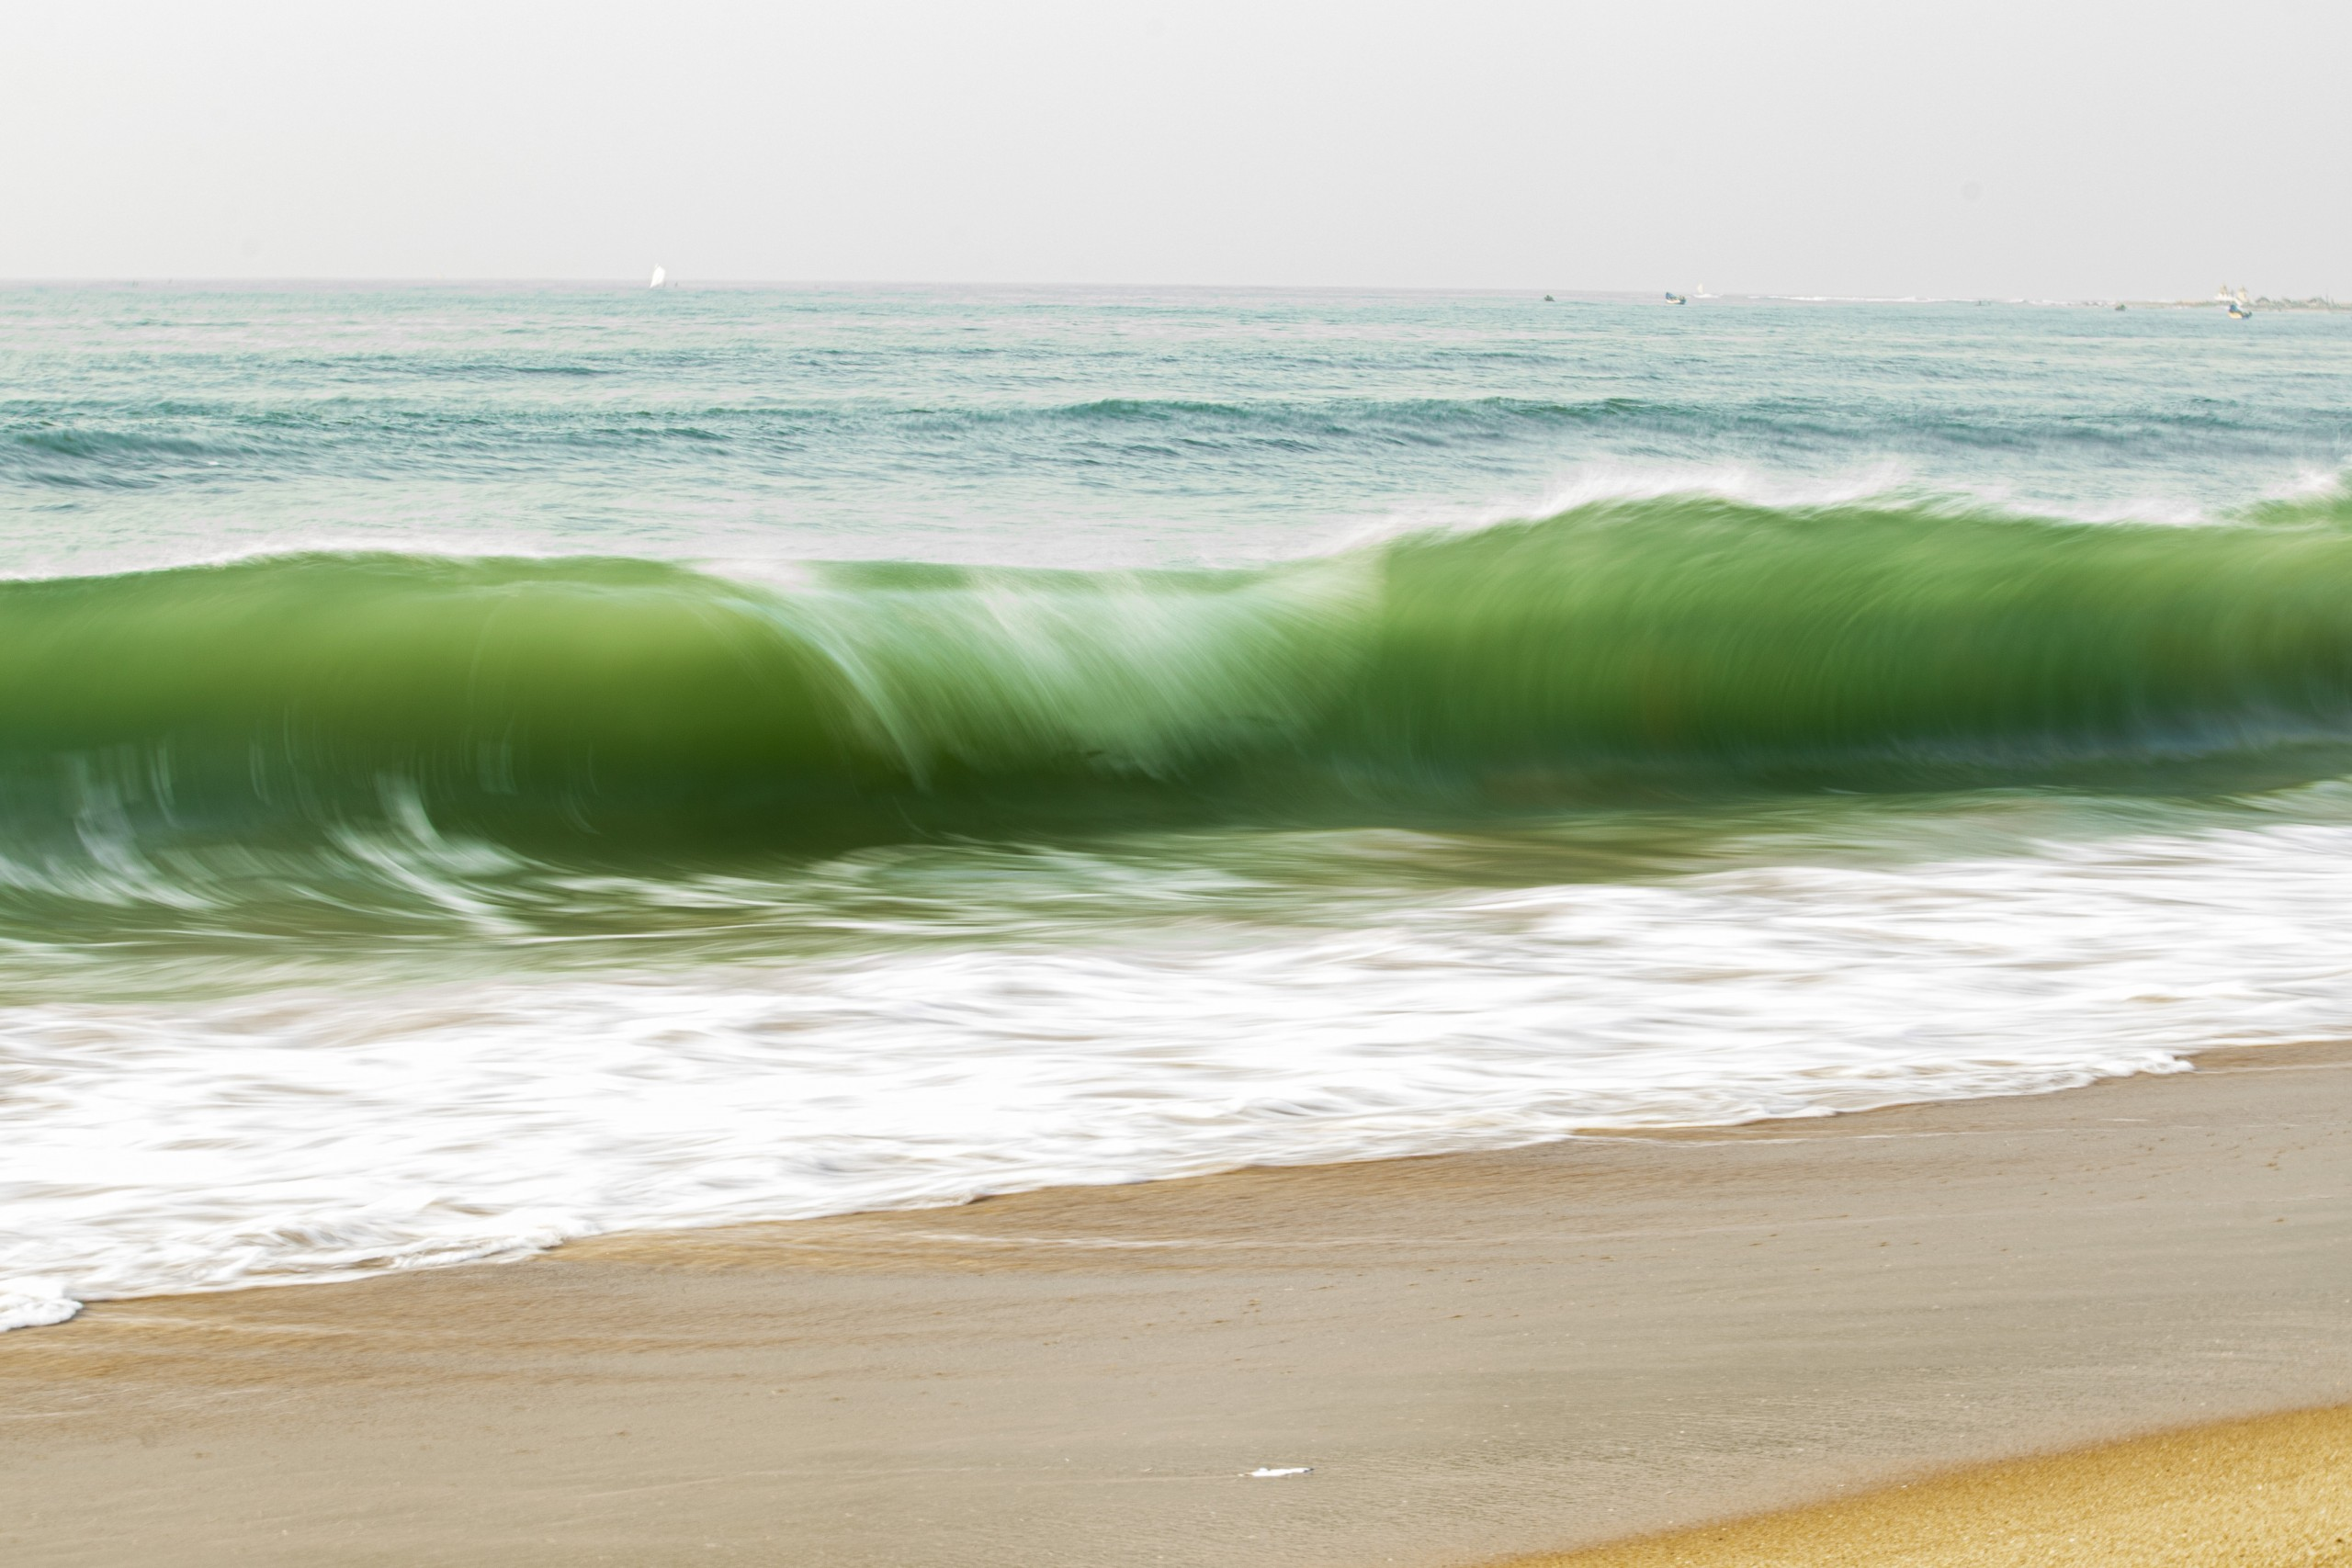 Long exposure of a tossing wave